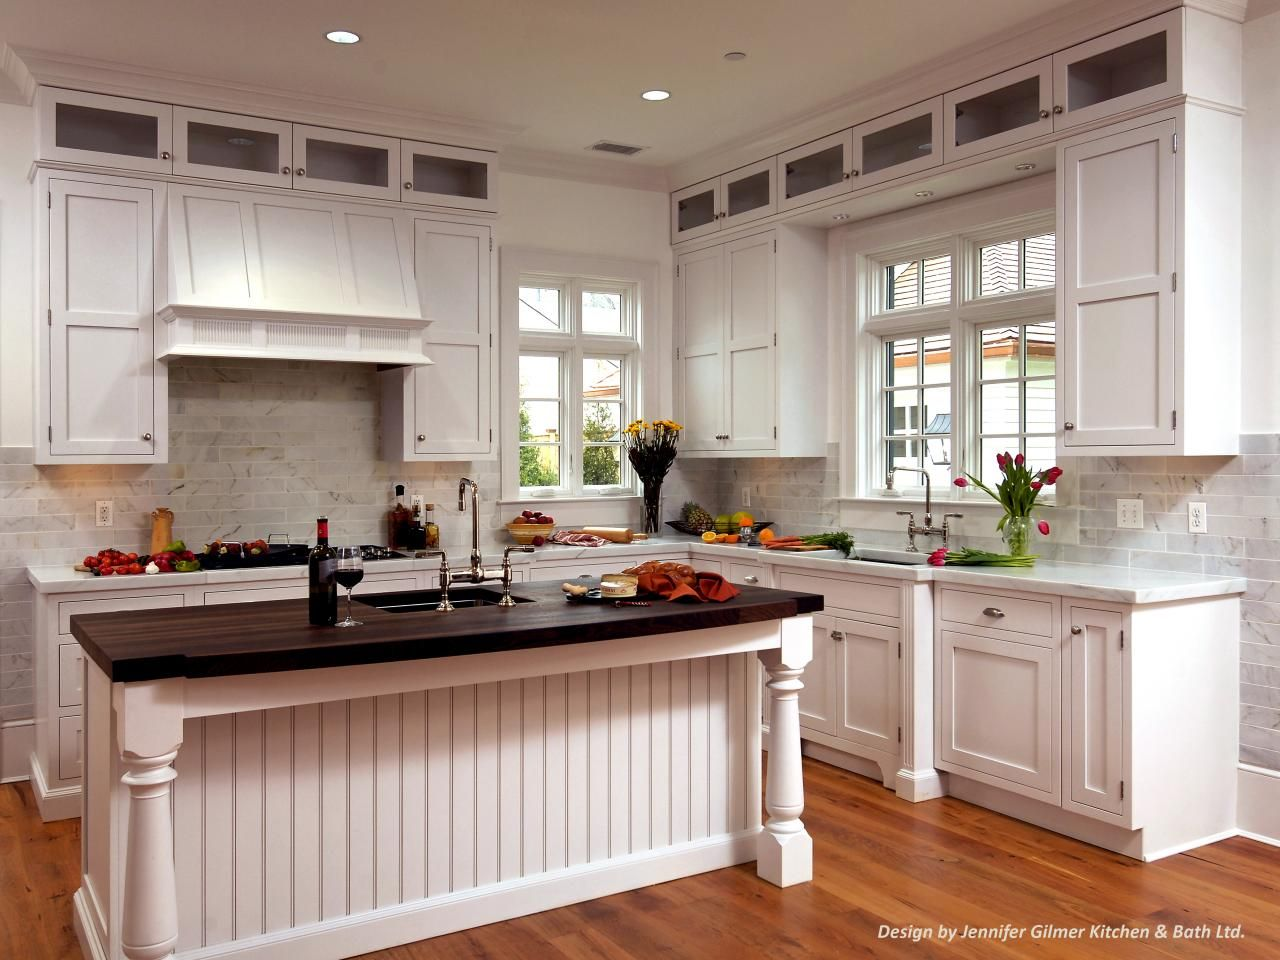 Recessed White Cabinets In This Kitchen Add Storage Space Without Taking Up Much Room The White Cab Beadboard Kitchen Country Style Kitchen Wainscoting Styles